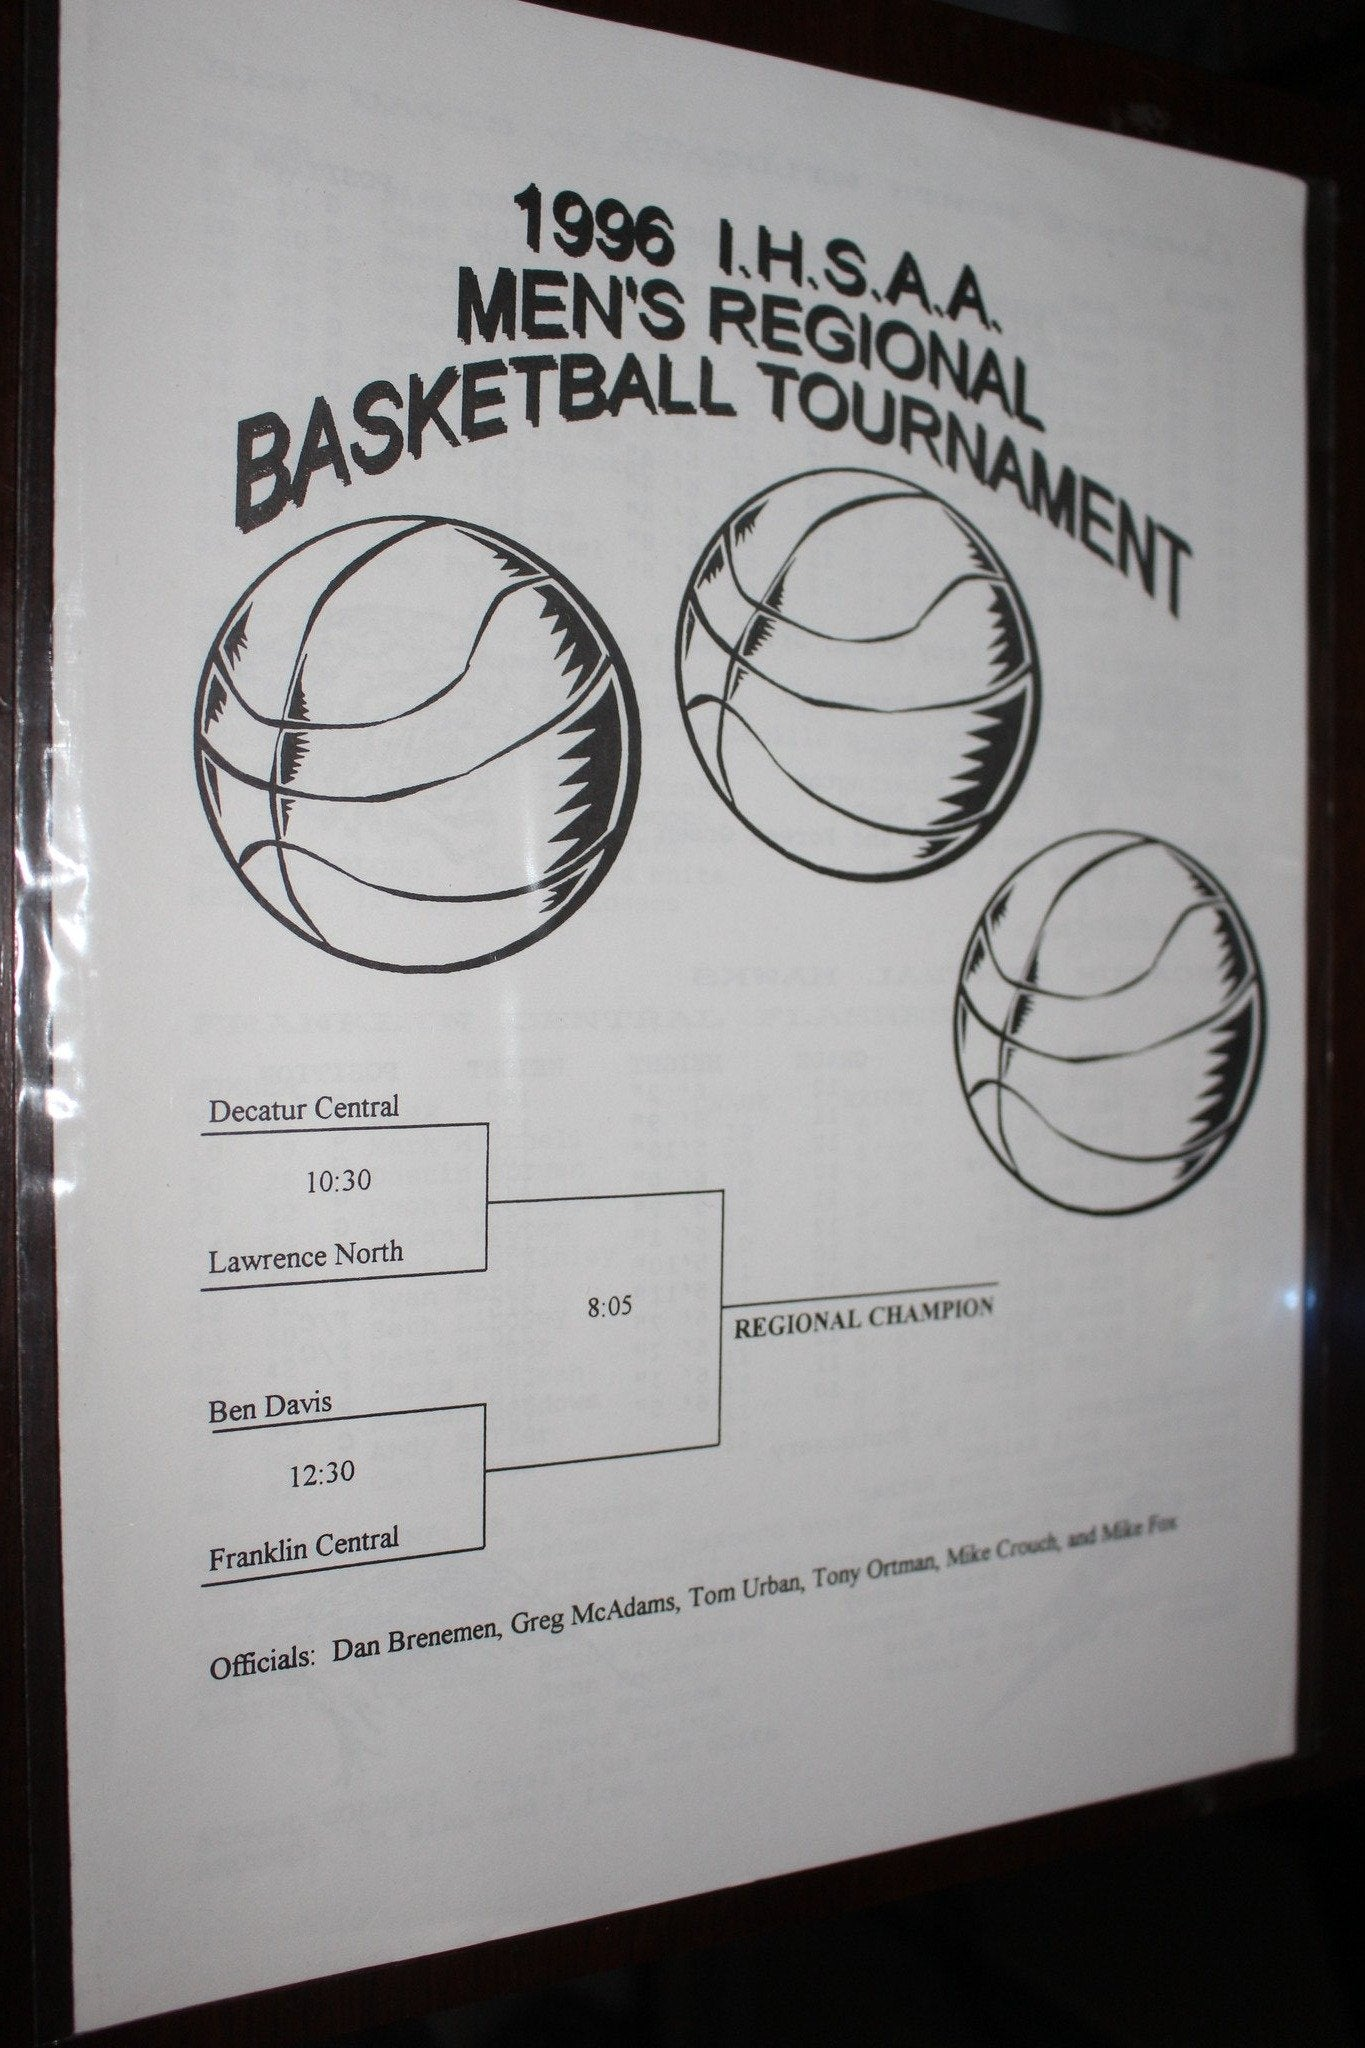 1996 Indiana High School Hinkle Fieldhouse Regional Basketball Program - Vintage Indy Sports